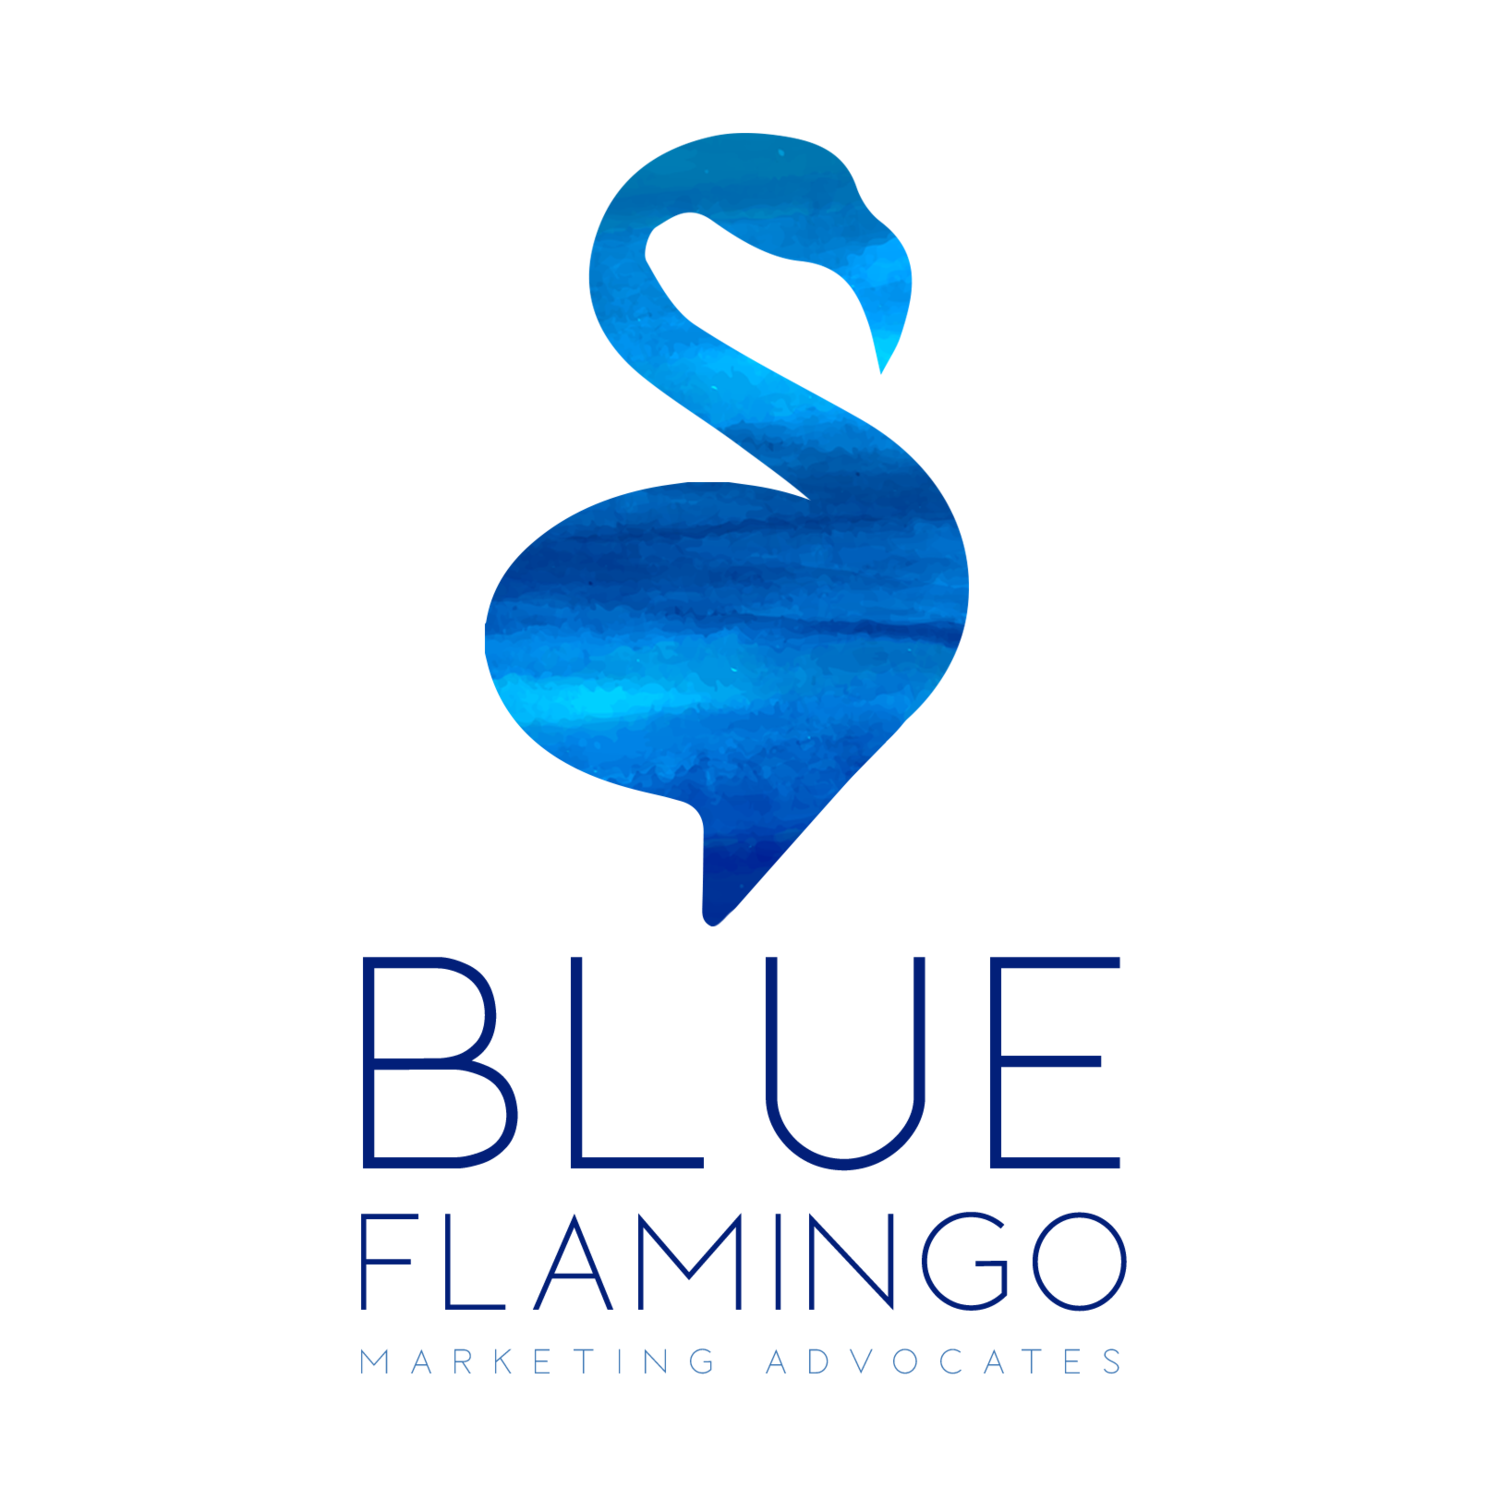 Blue Flamingo Marketing Advocates